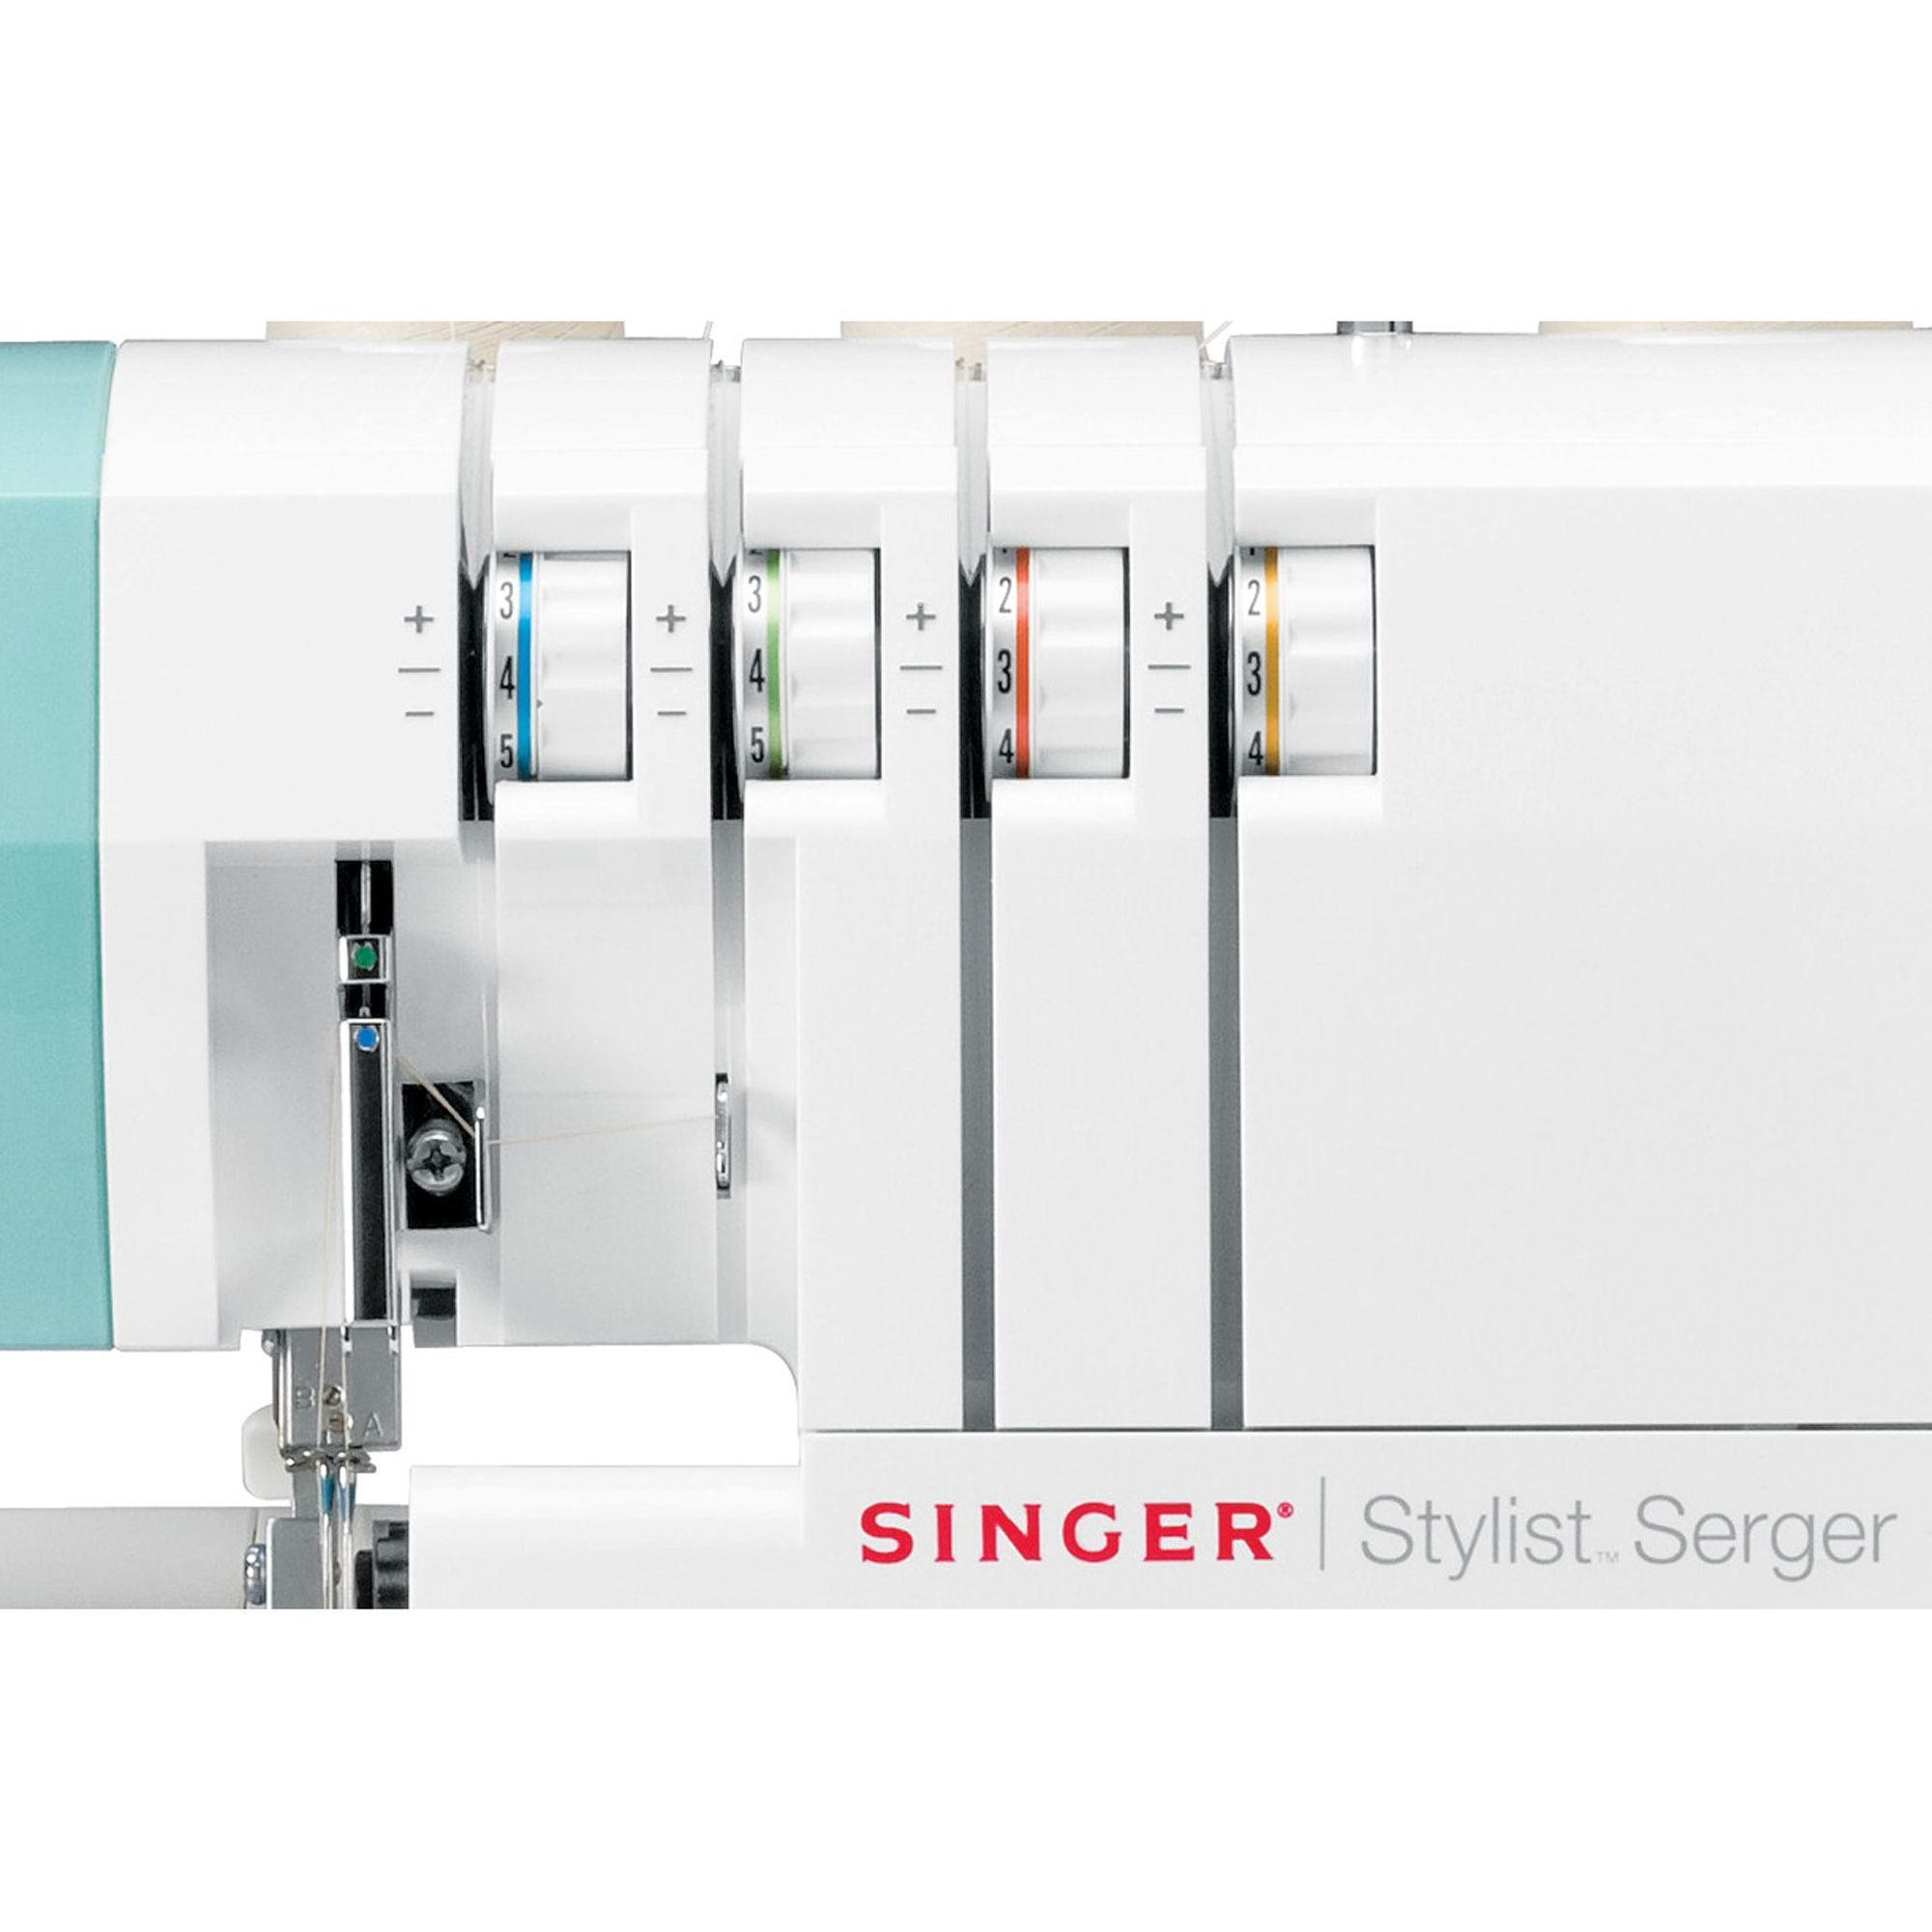 Singer 14SH764.CL 2-3-4 Thread Capability Stylist Serger Sewing Machine